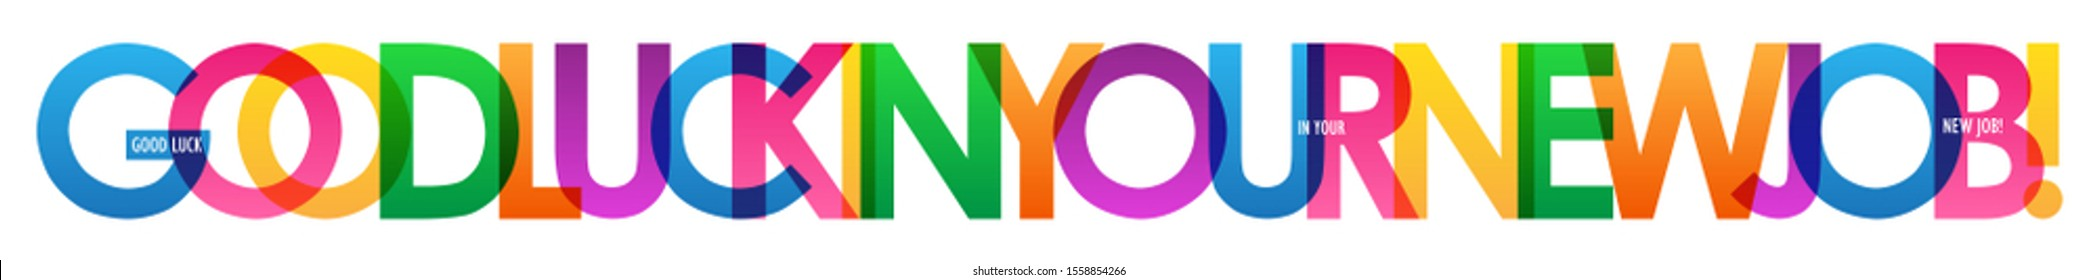 GOOD LUCK IN YOUR NEW JOB! colorful vector typography banner